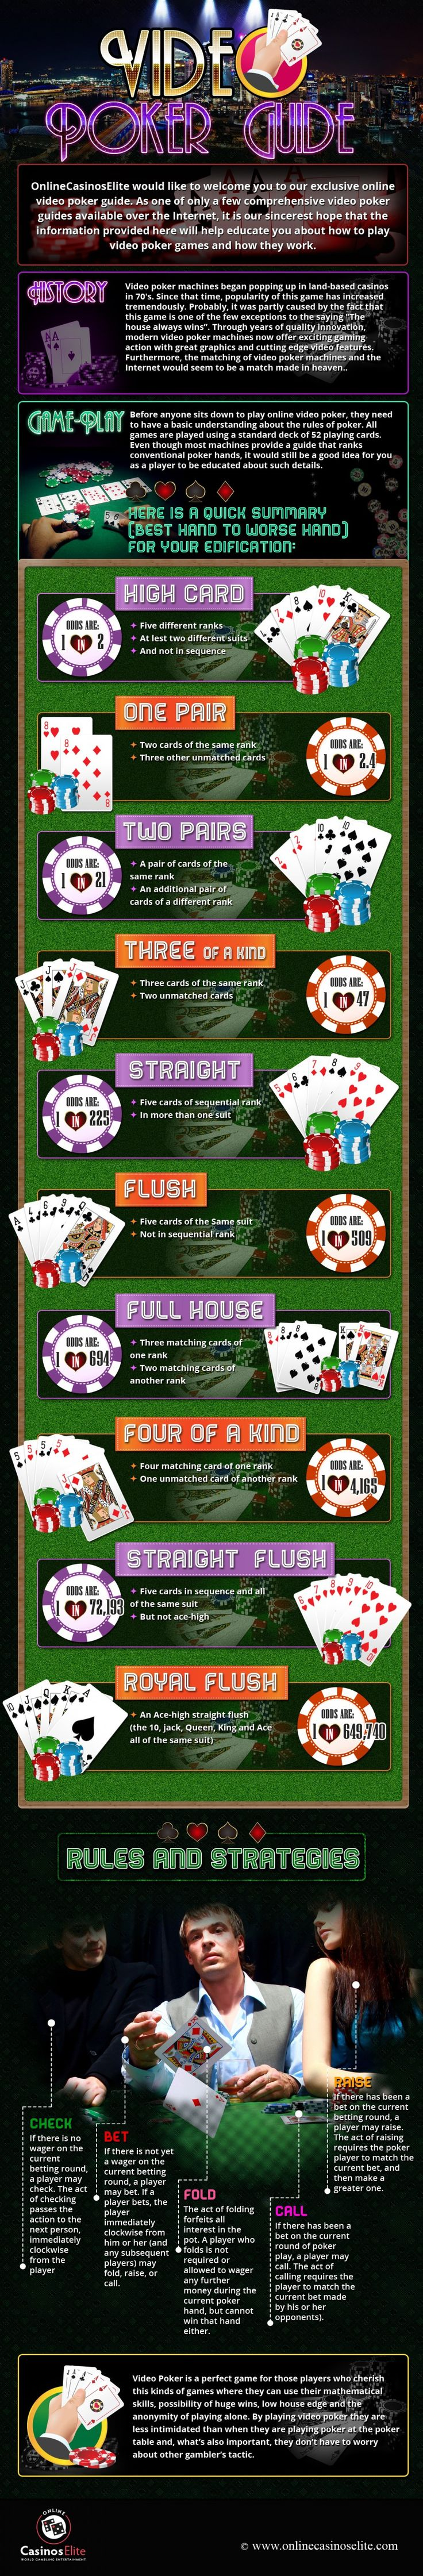 online casino play for fun american poker 2 spielen